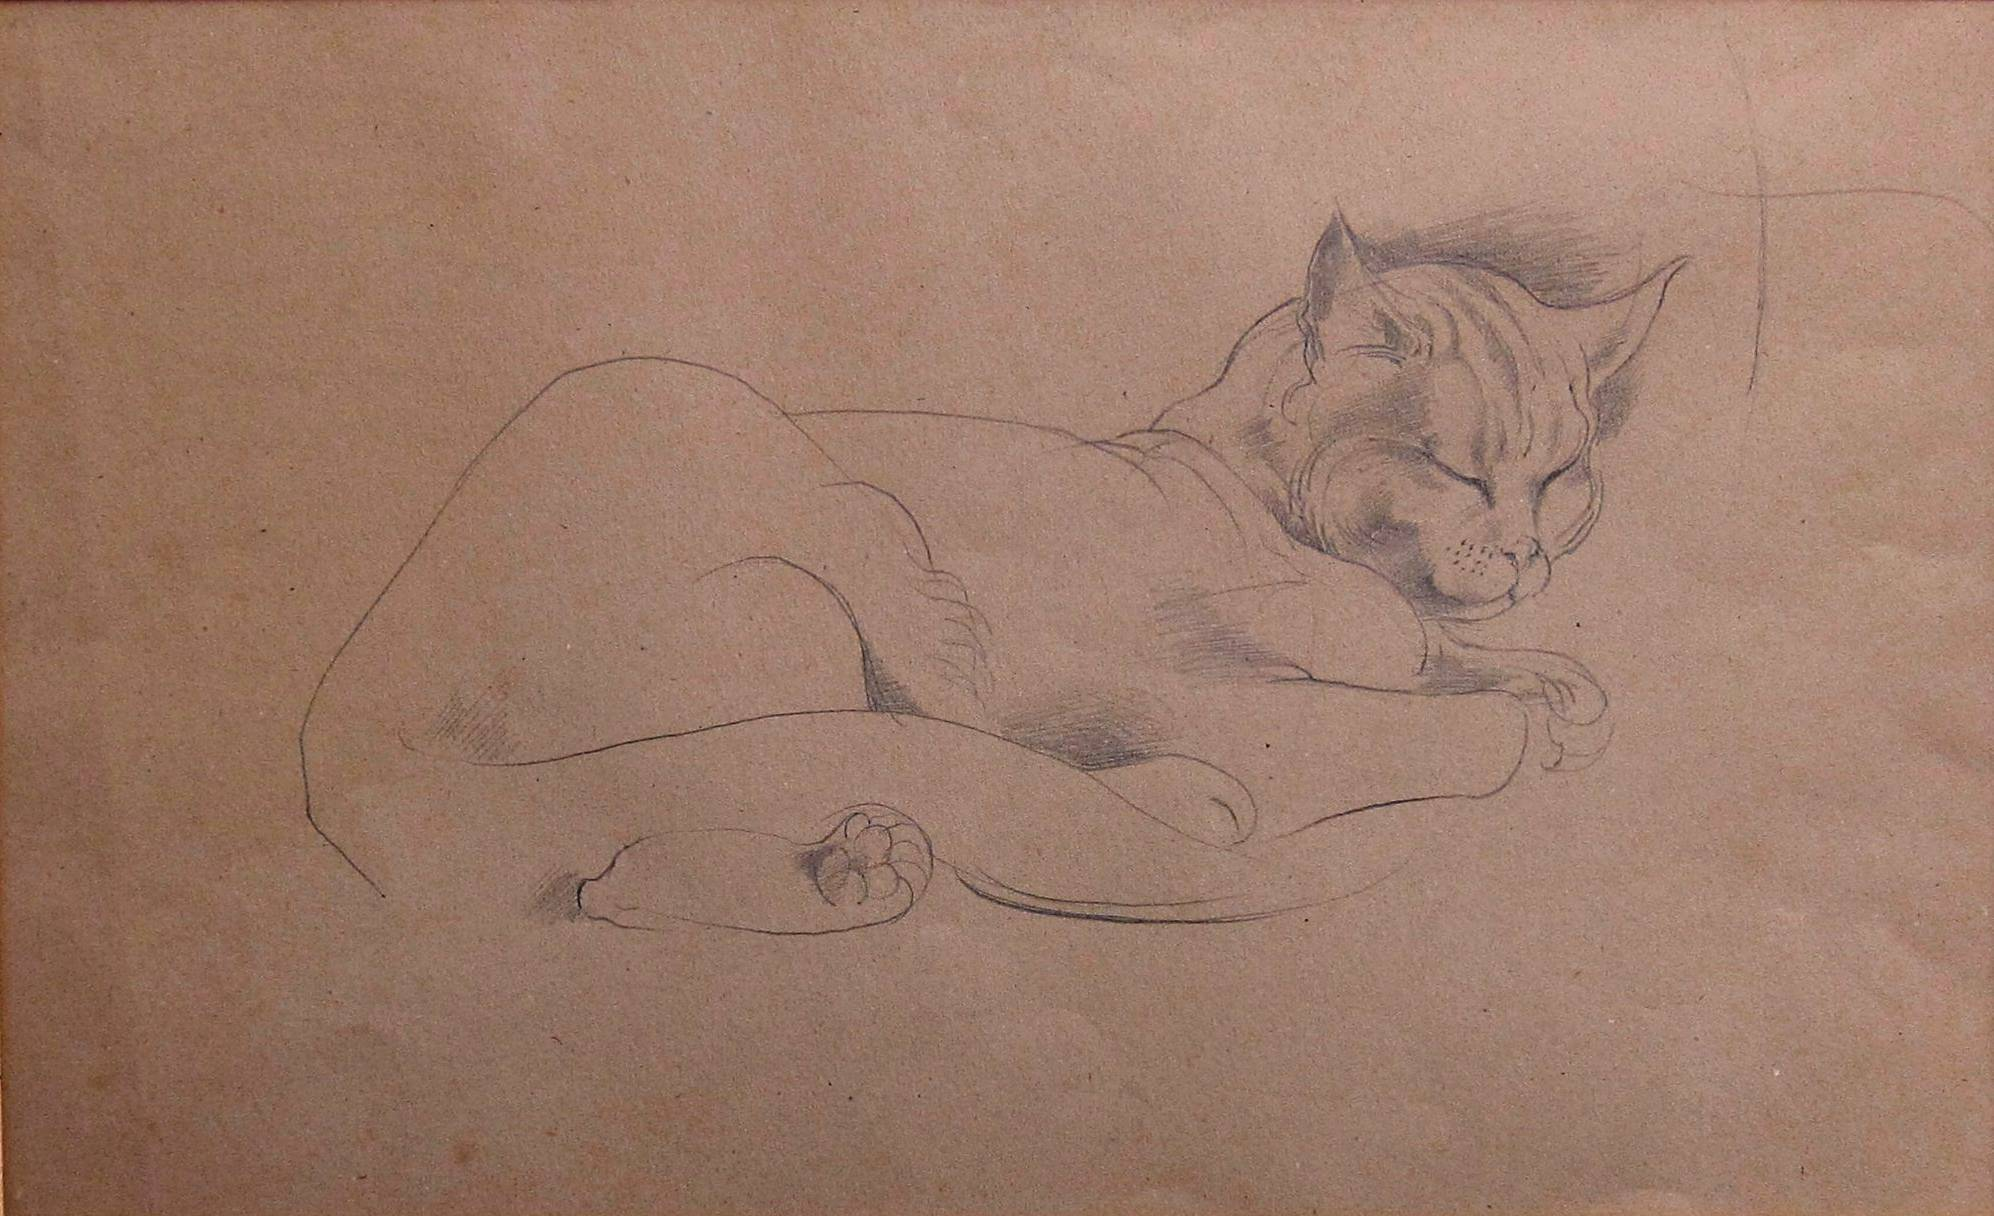 MICHAEL AYRTON [1921-75]. Cat Asleep, c.1953. Pencil on light brown paper. 32 x 51 cm [with mount